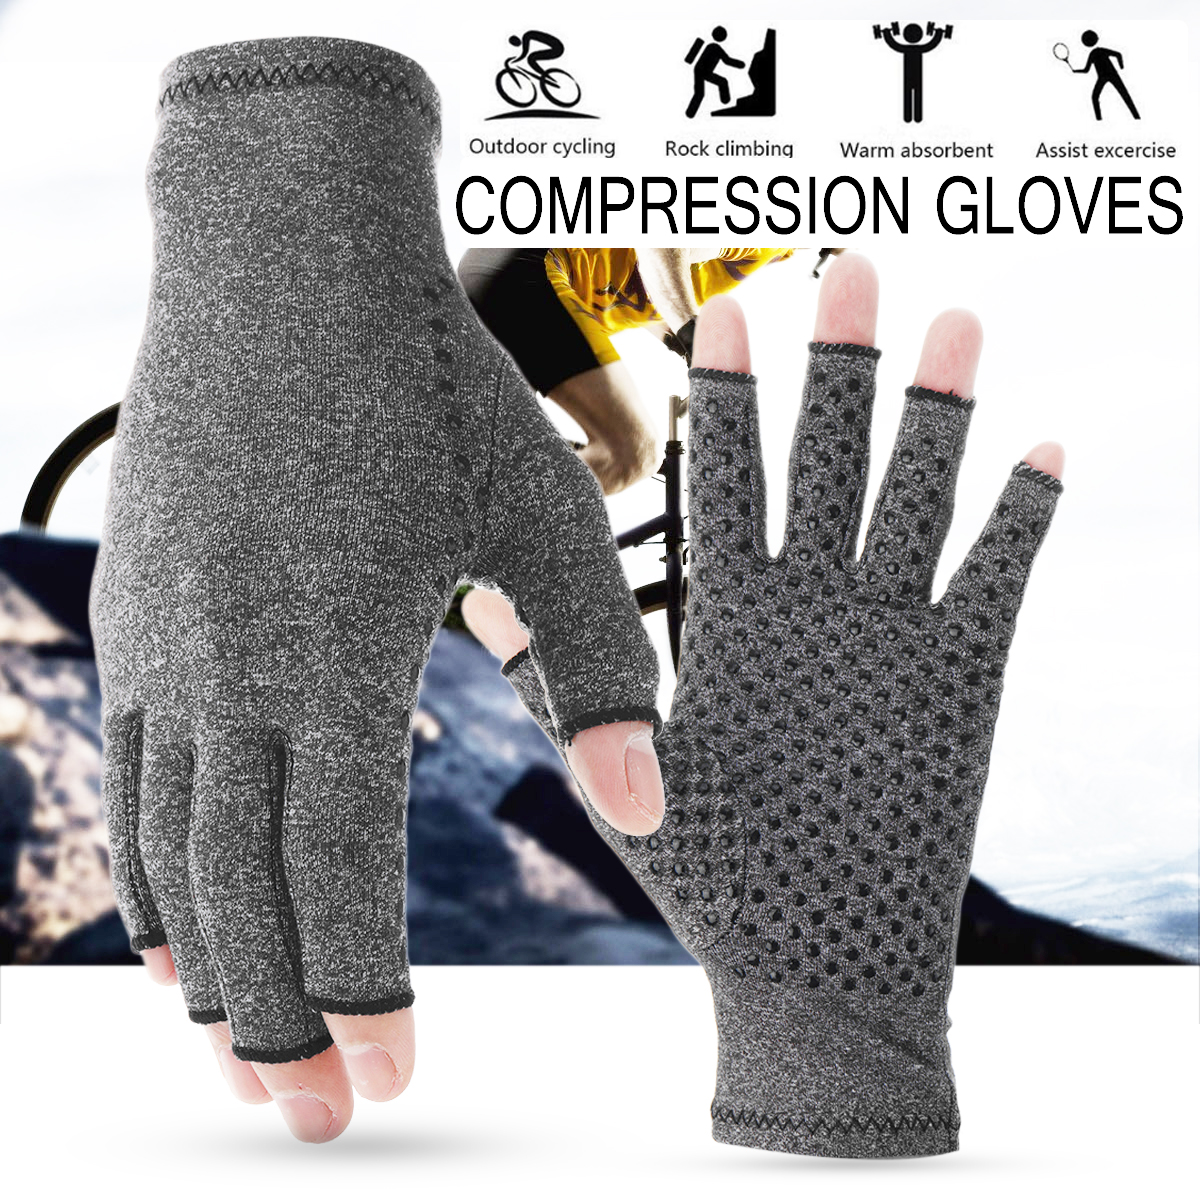 ed2770db8f 1 pair anti arthritis gloves ease pain relief compression gloves ...